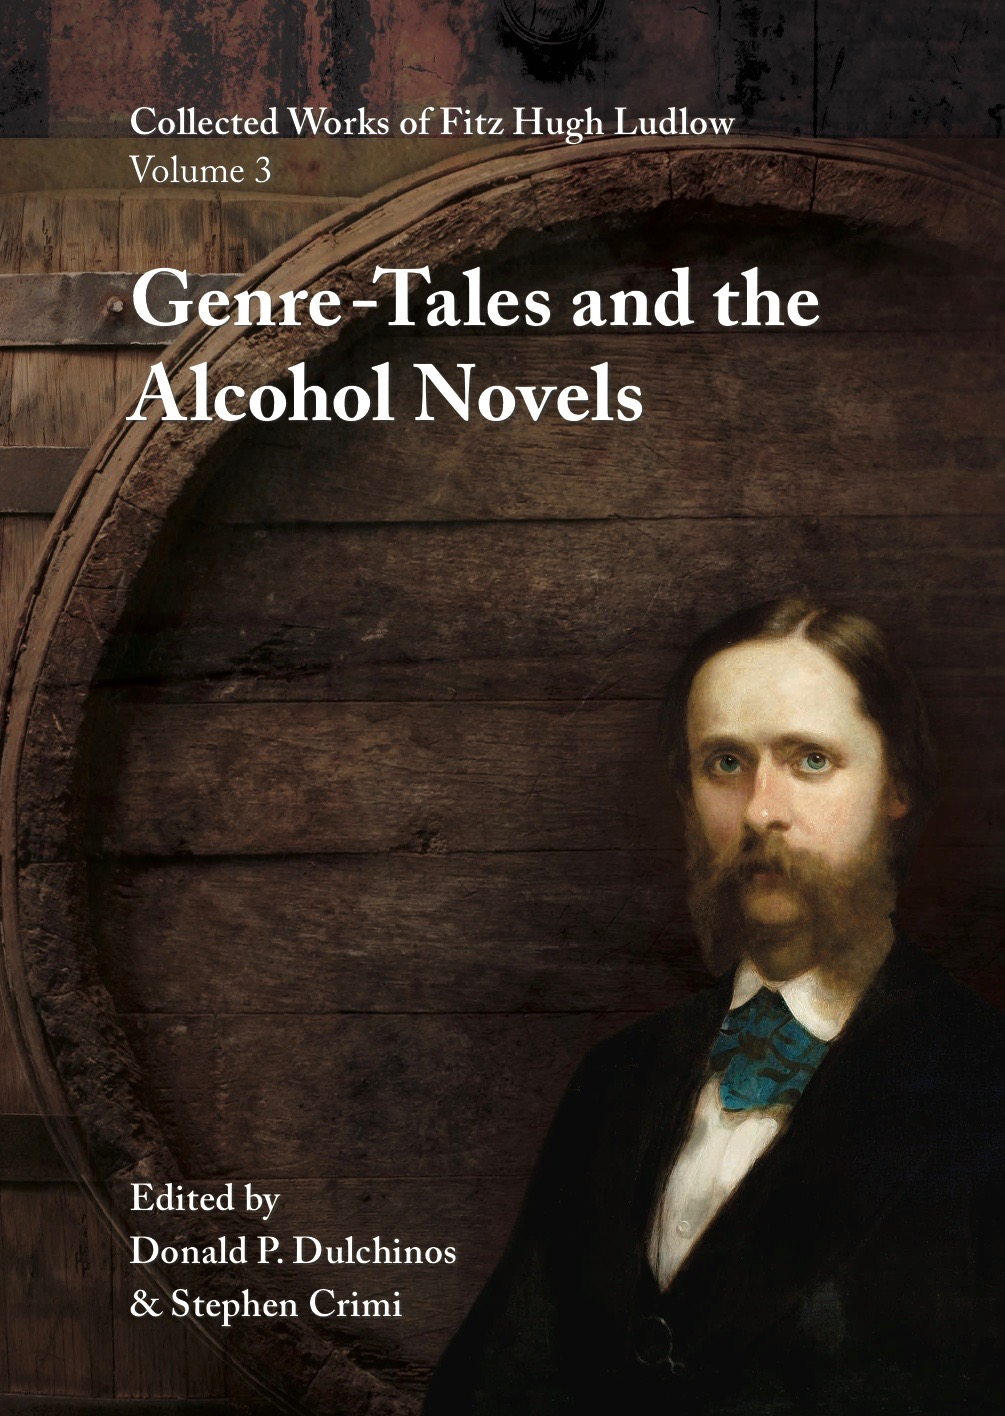 Collected Works of Fitz Hugh Ludlow, Volume 3: Genre-Tales and the Alcohol Novels